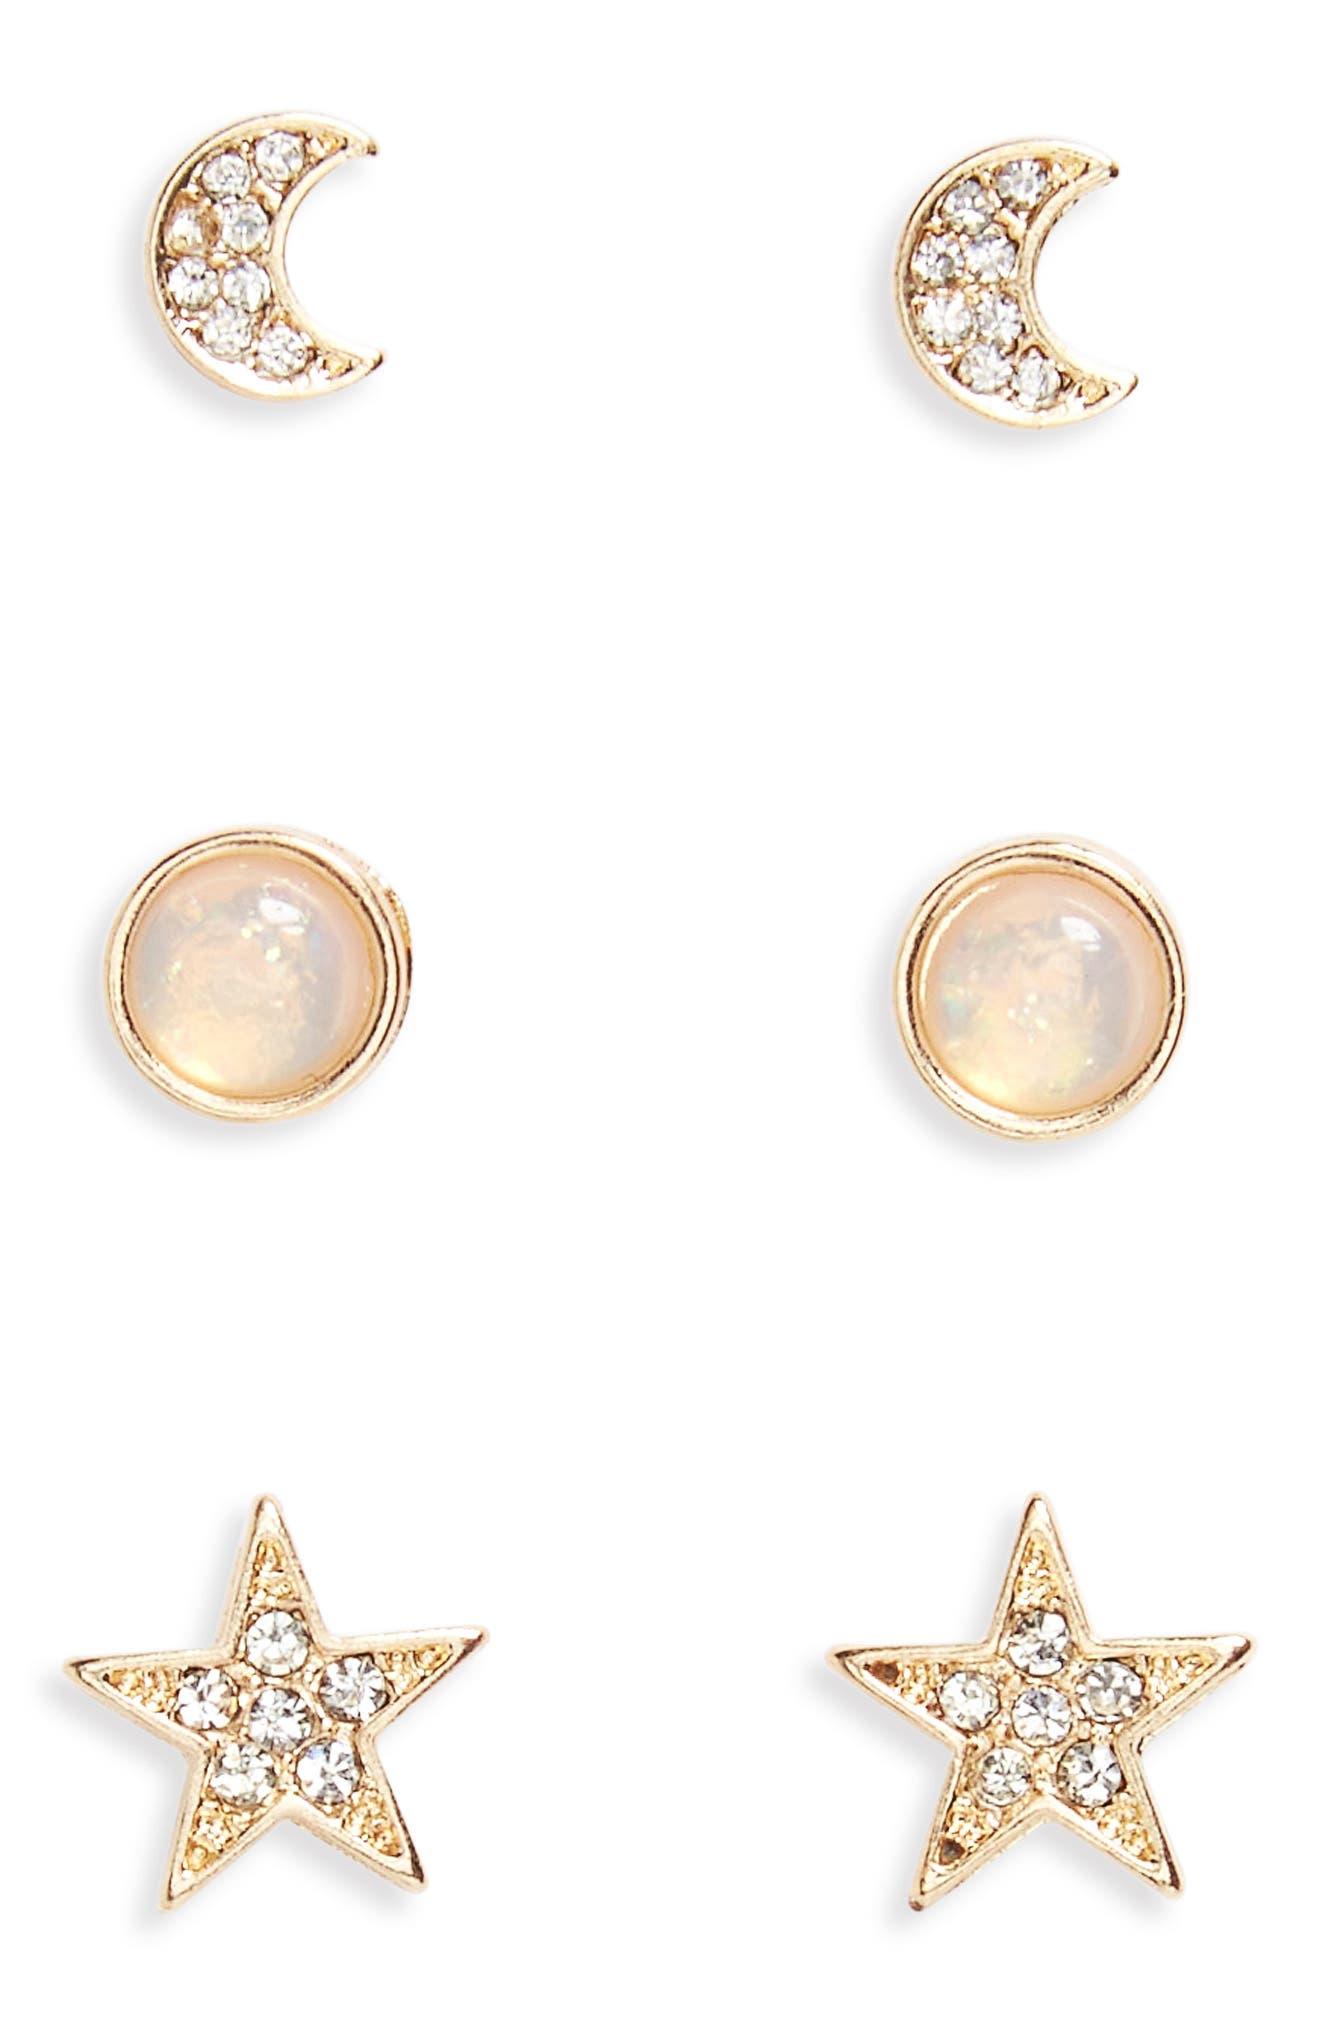 Moon, Star & Faux Opal 3-Pack Earrings,                             Main thumbnail 1, color,                             710